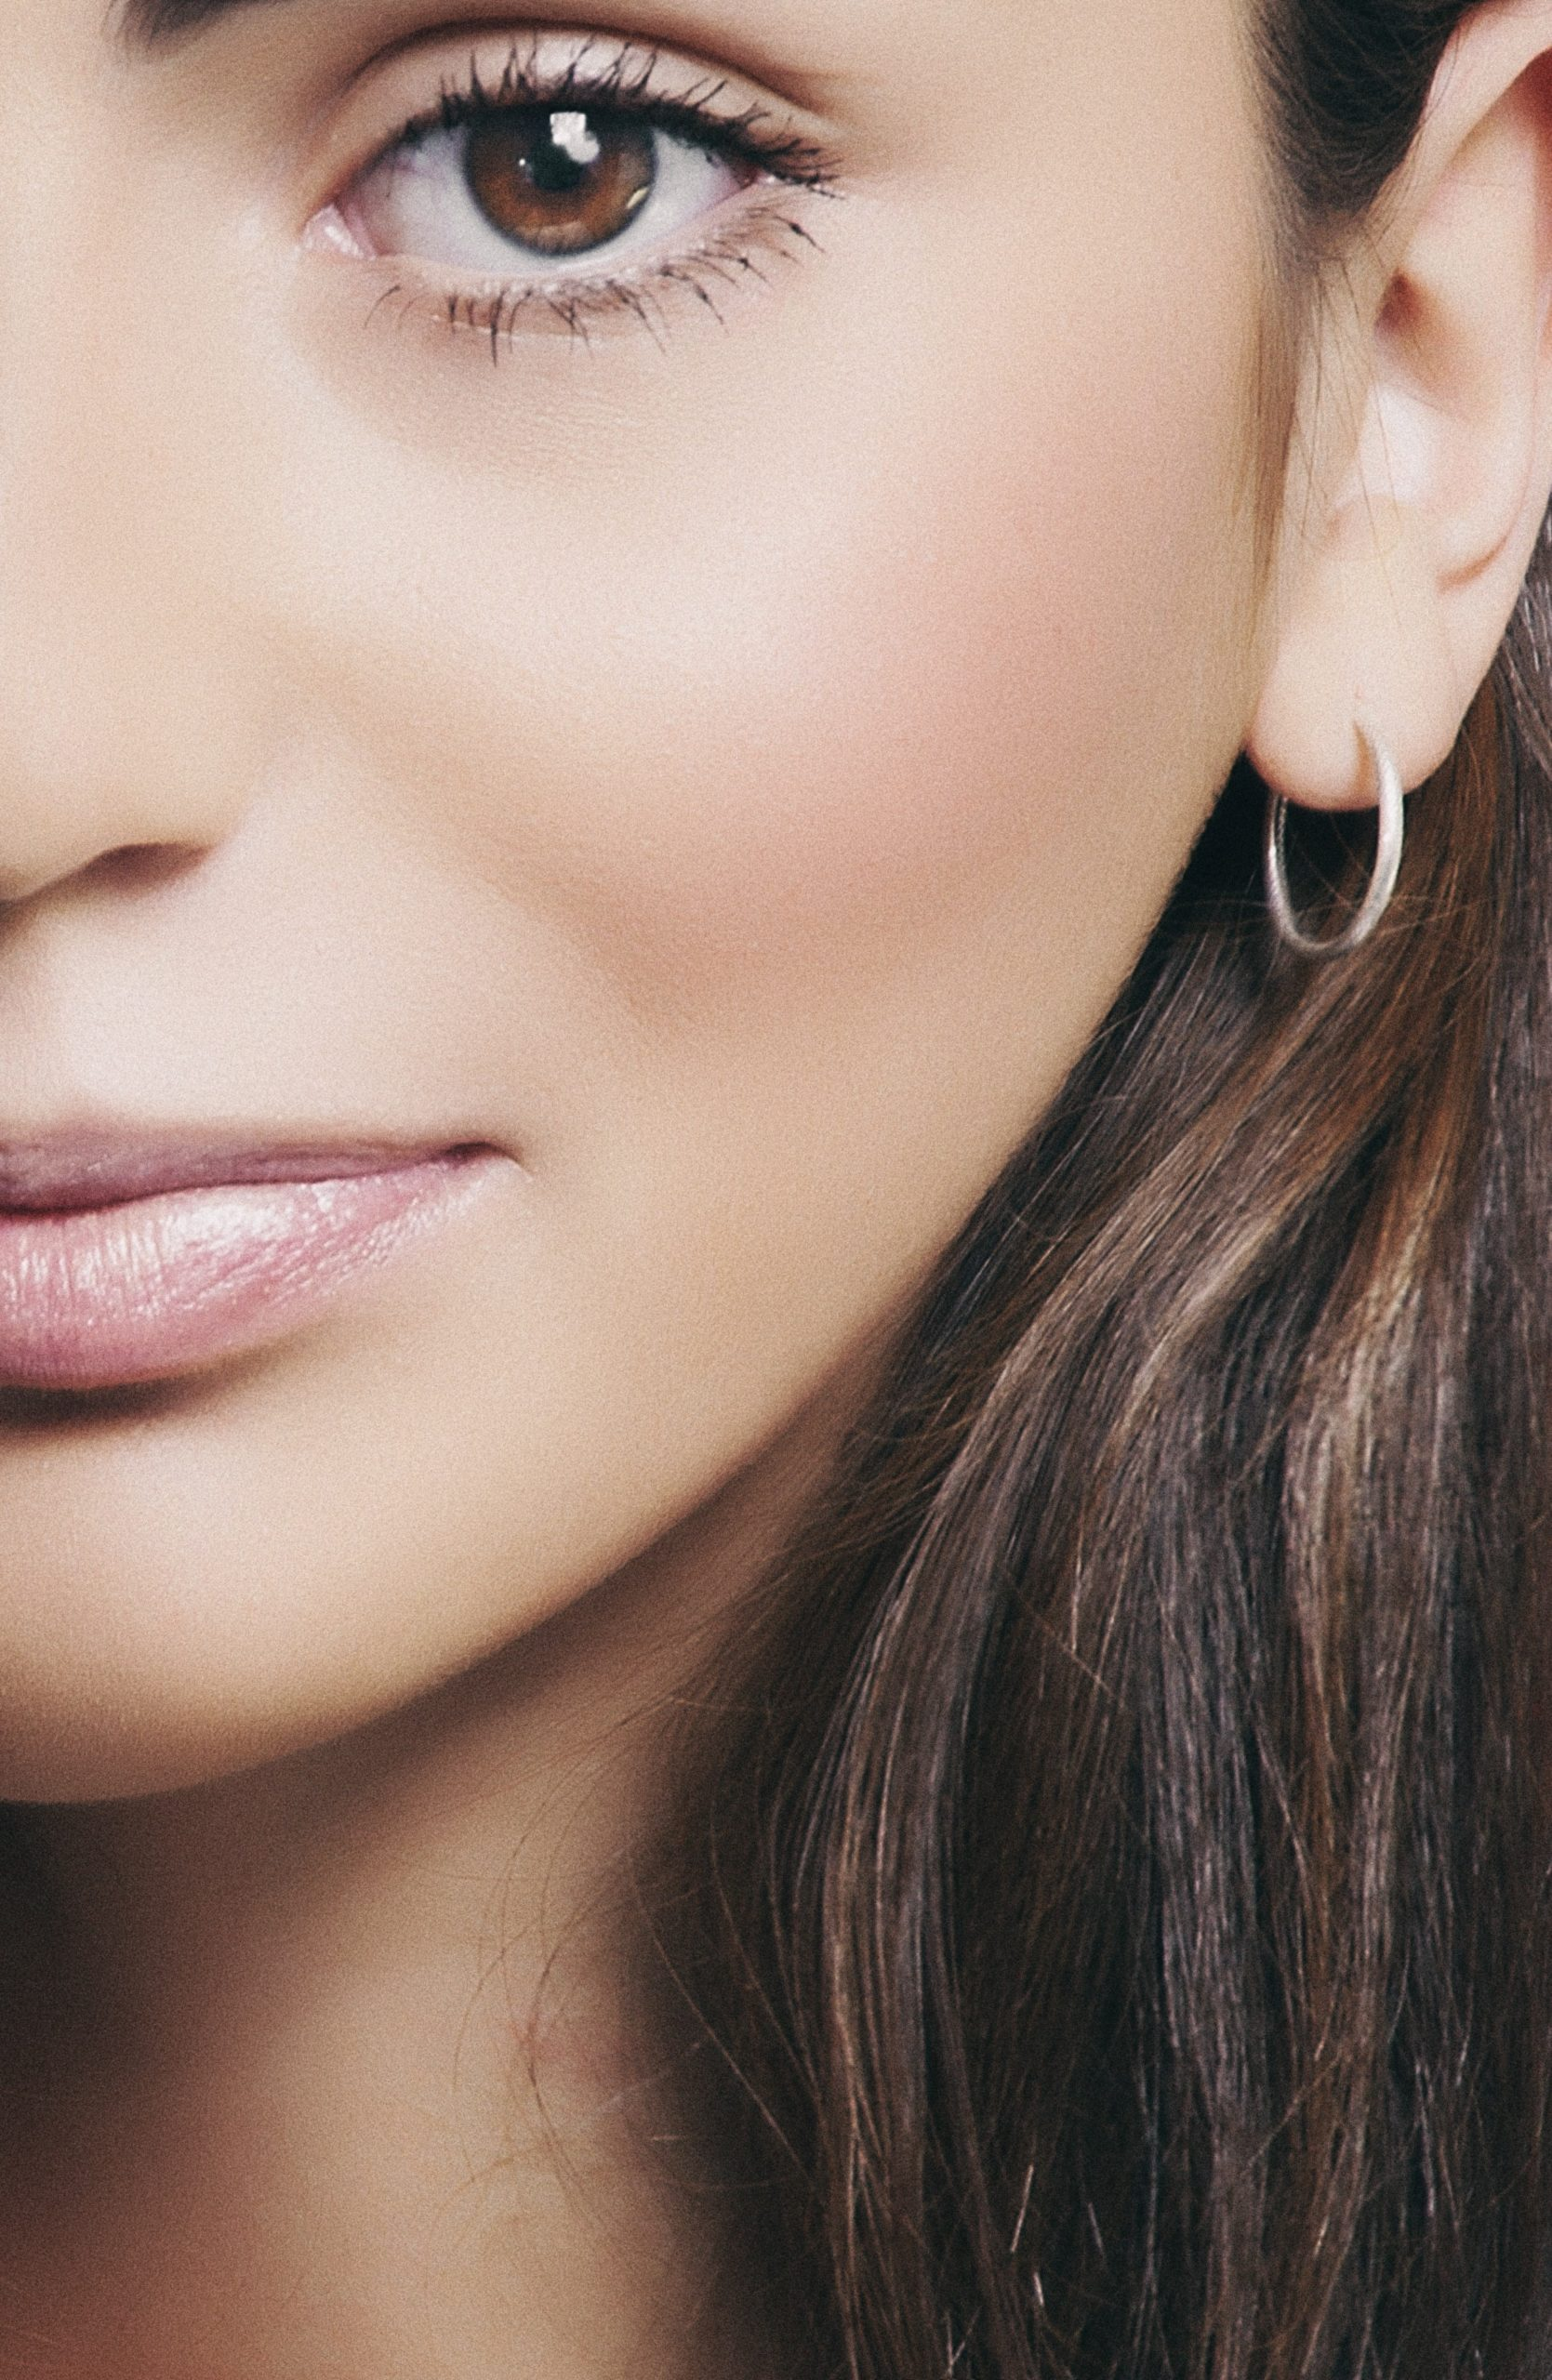 close up of a woman wearing natural makeup, a light lipstick, giving the appearance of plump lips.